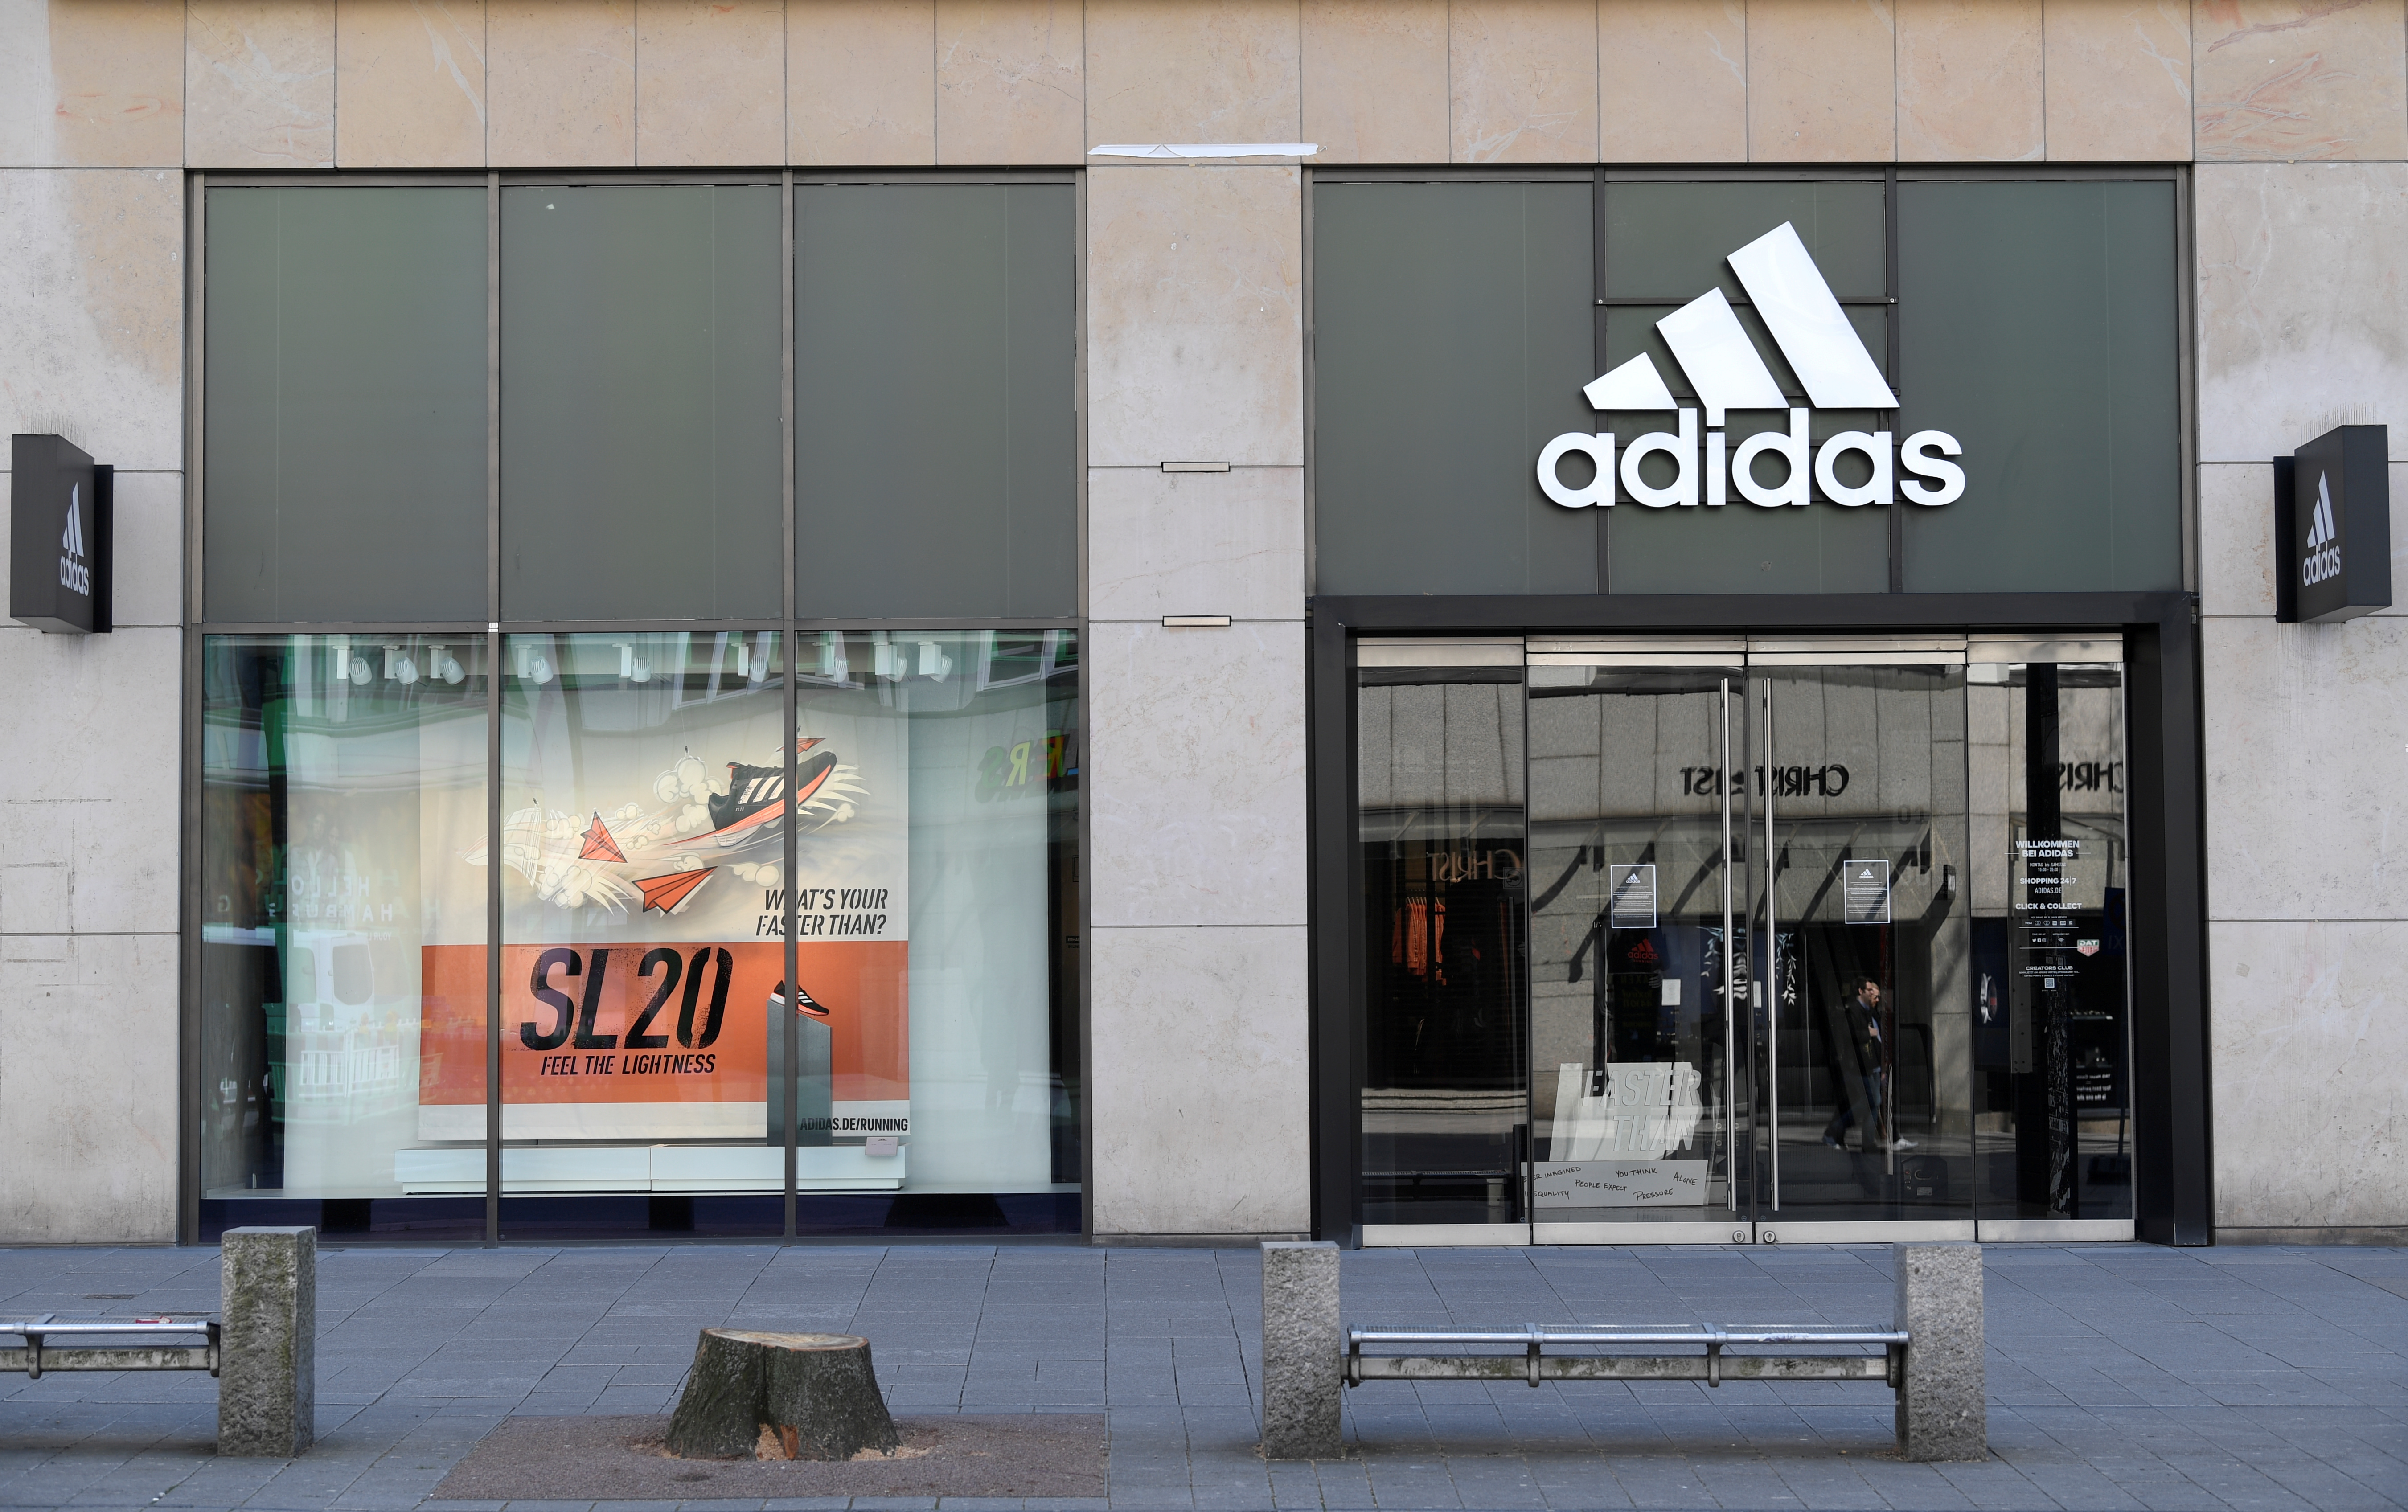 A closed Adidas store is pictured during the spread of the coronavirus disease (COVID-19) in Hamburg, Germany March 28, 2020. REUTERS/Fabian Bimmer/File Photo